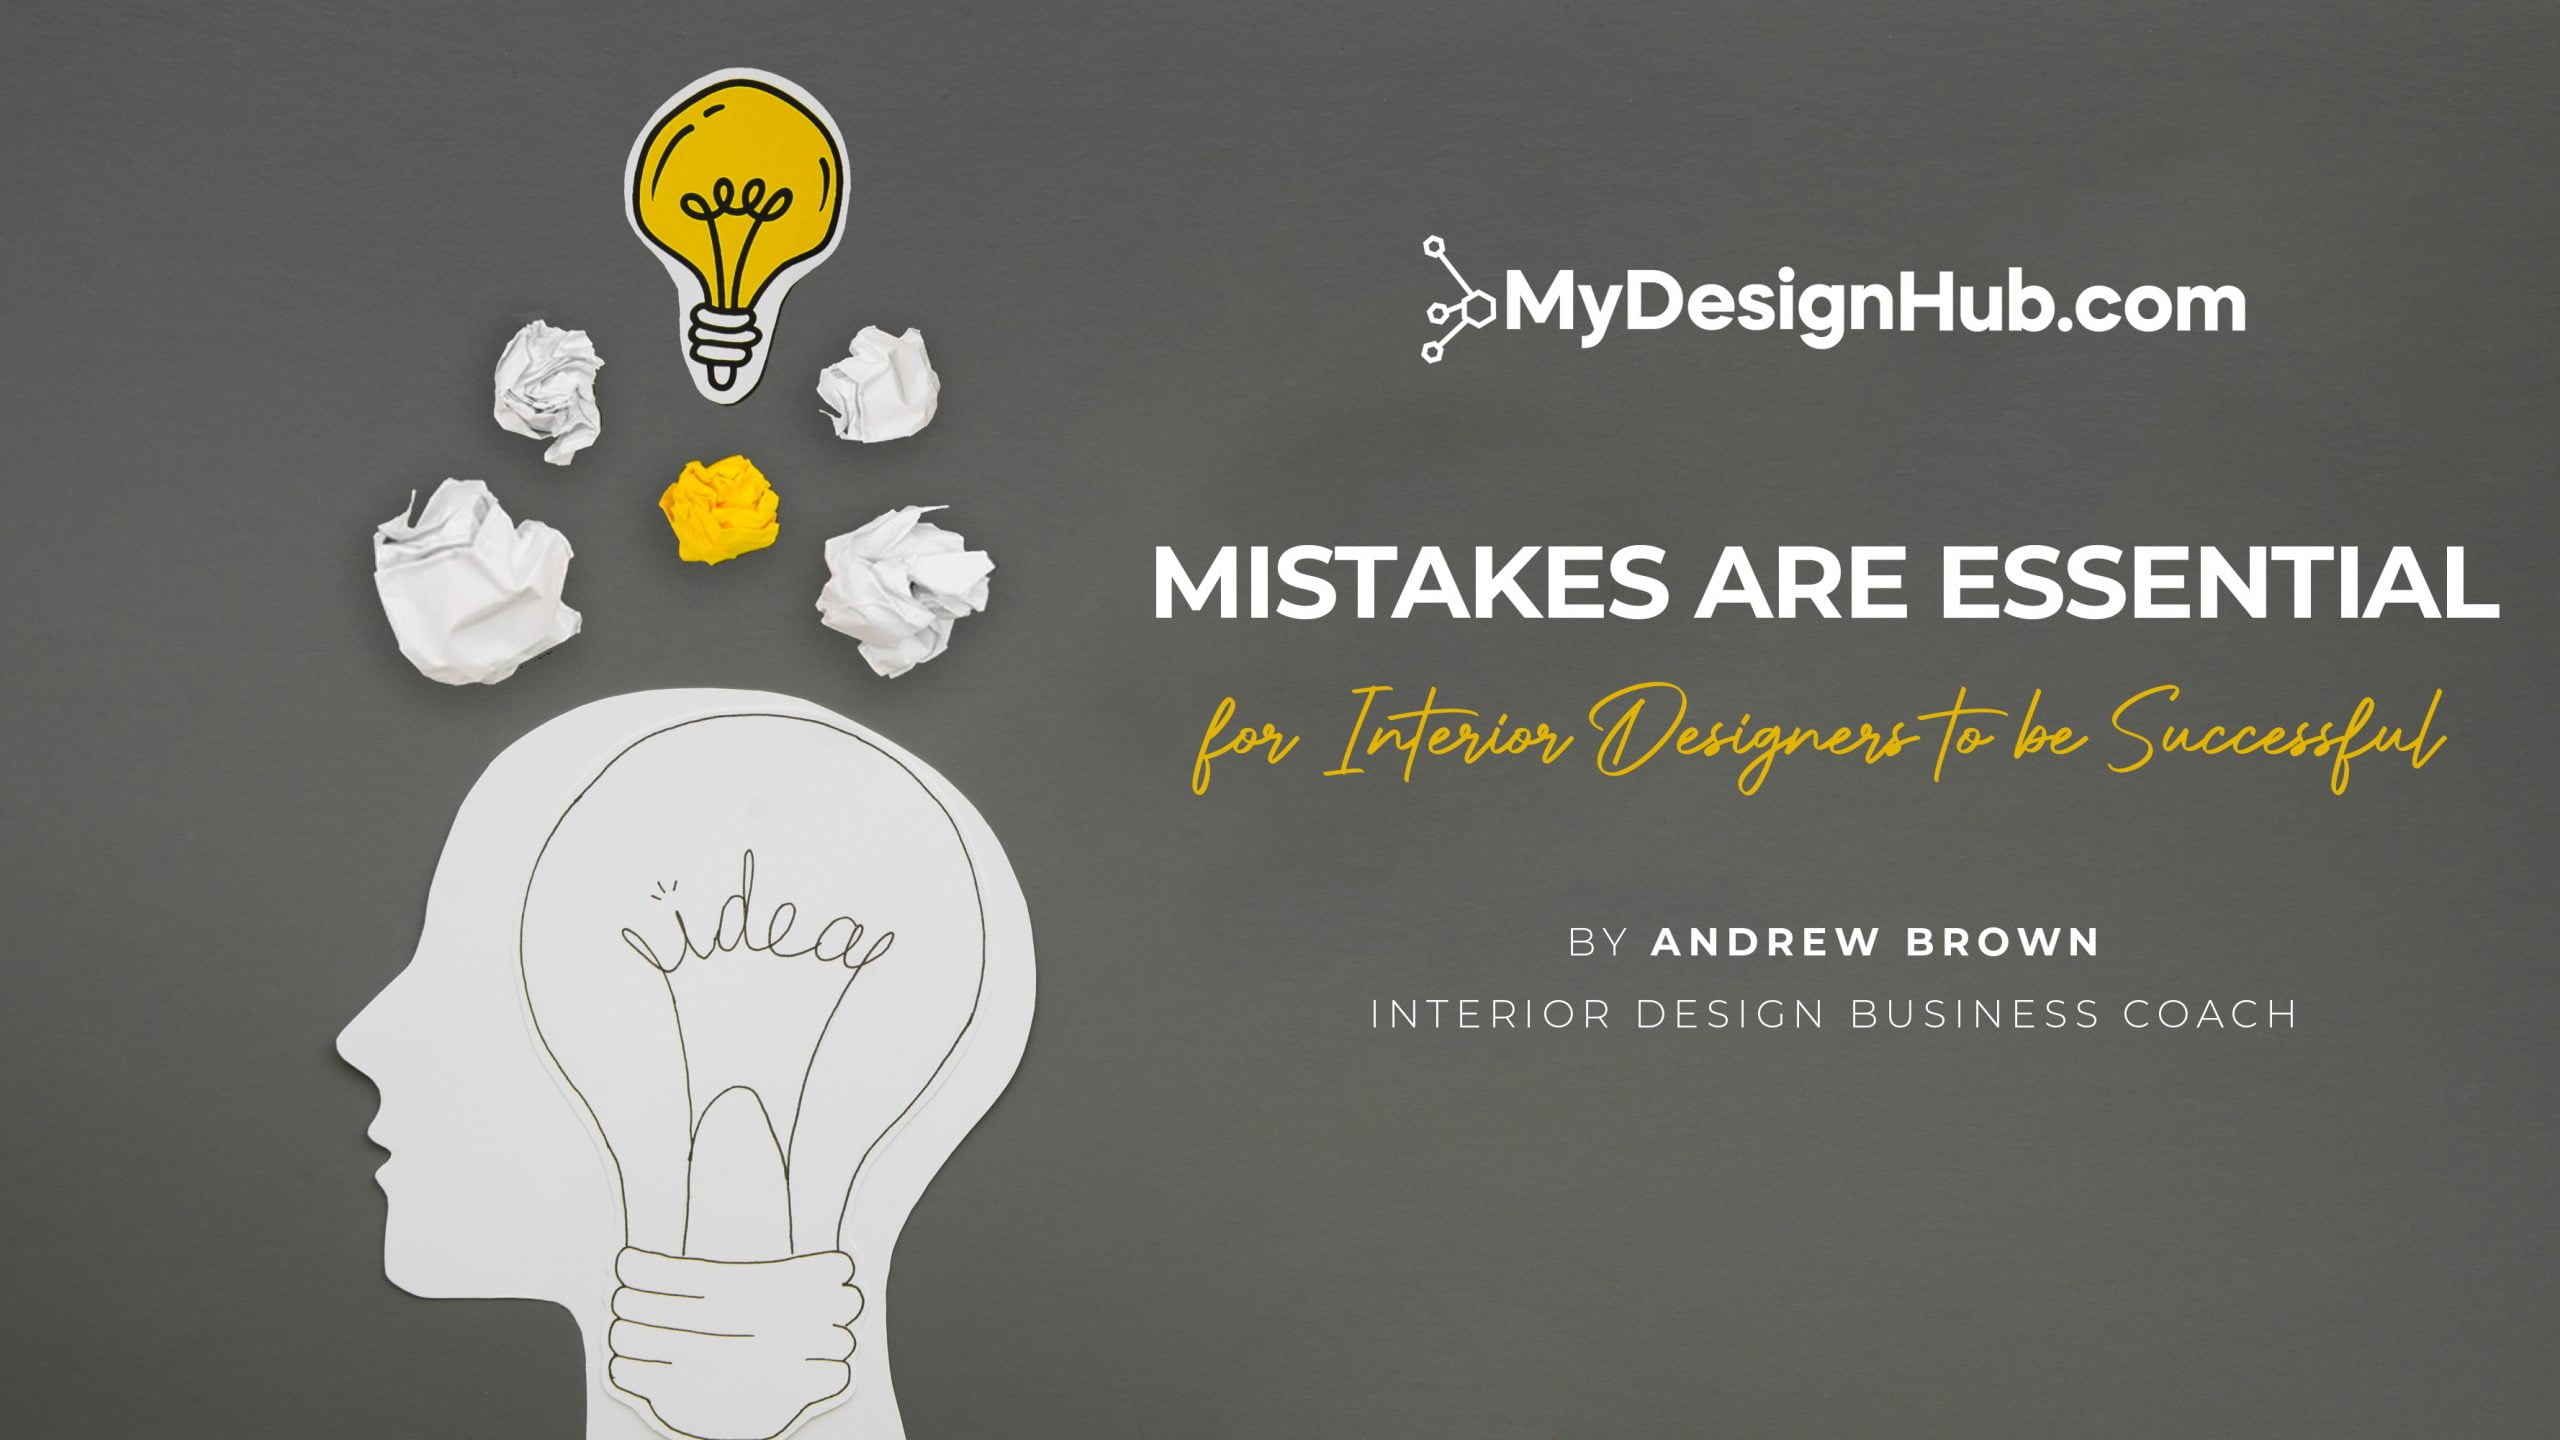 Mistakes are Essential for Interior Designers to be Successful